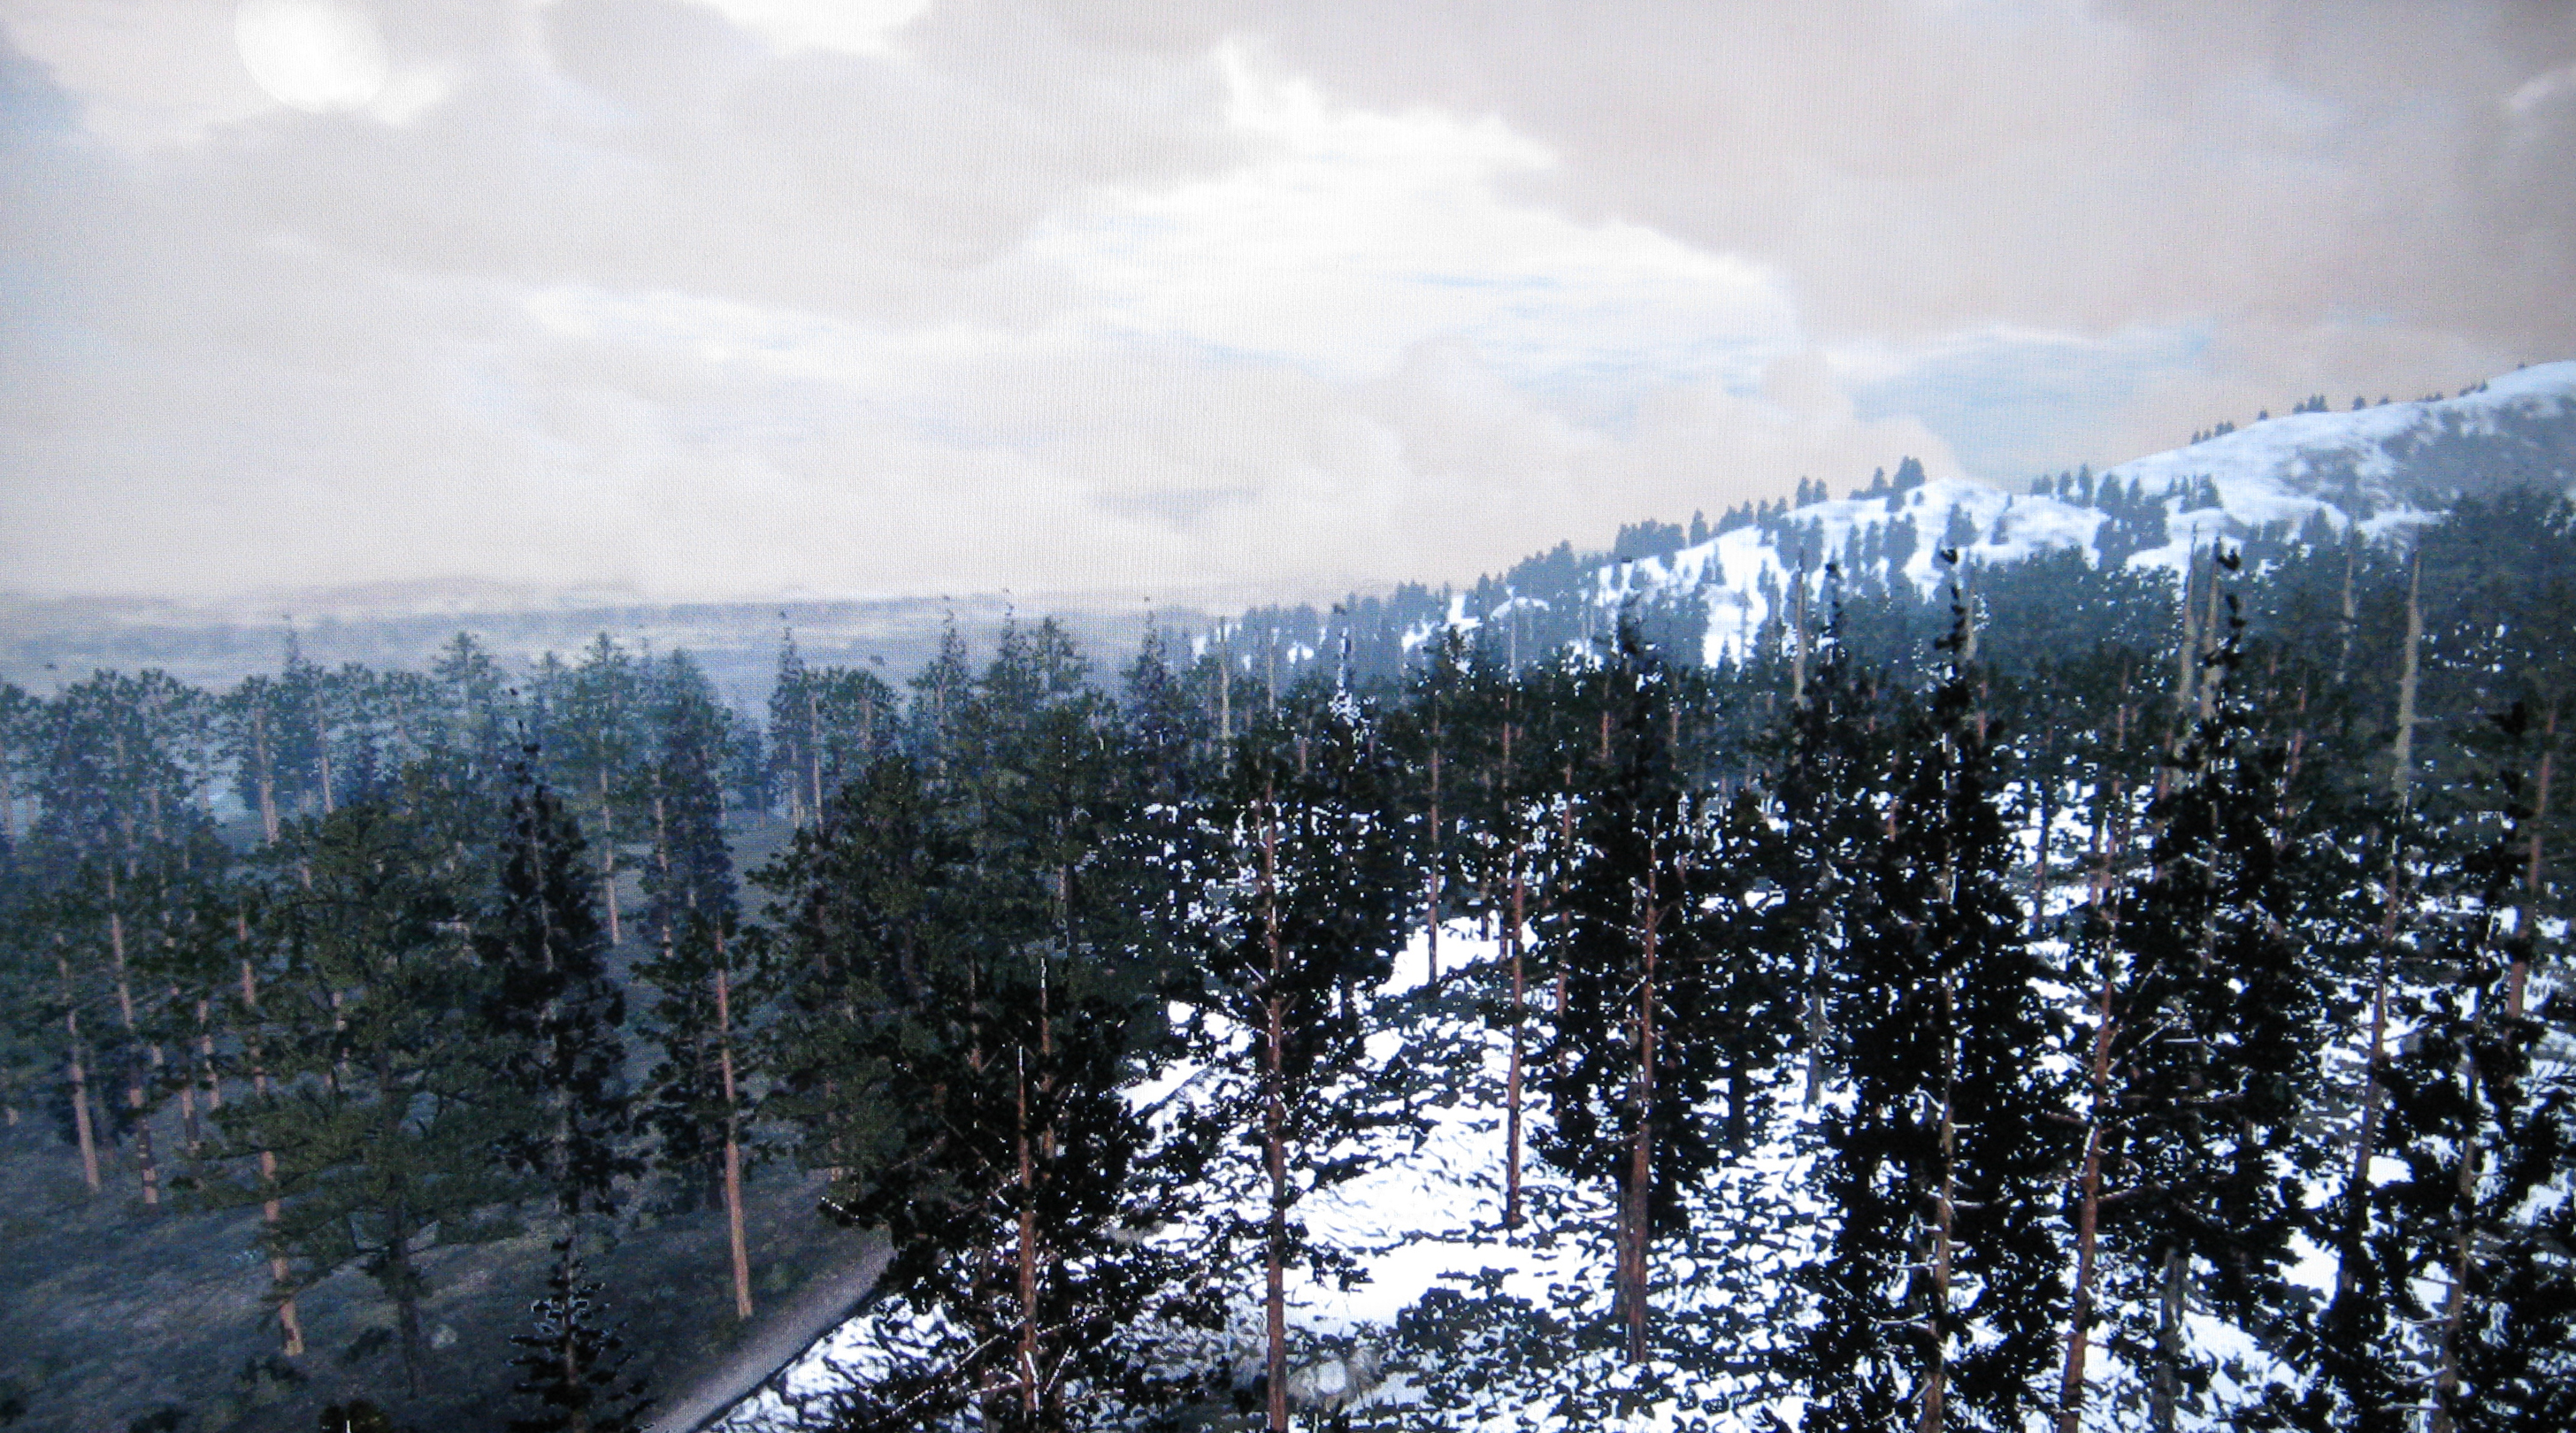 Rdr_tall_trees00.jpg